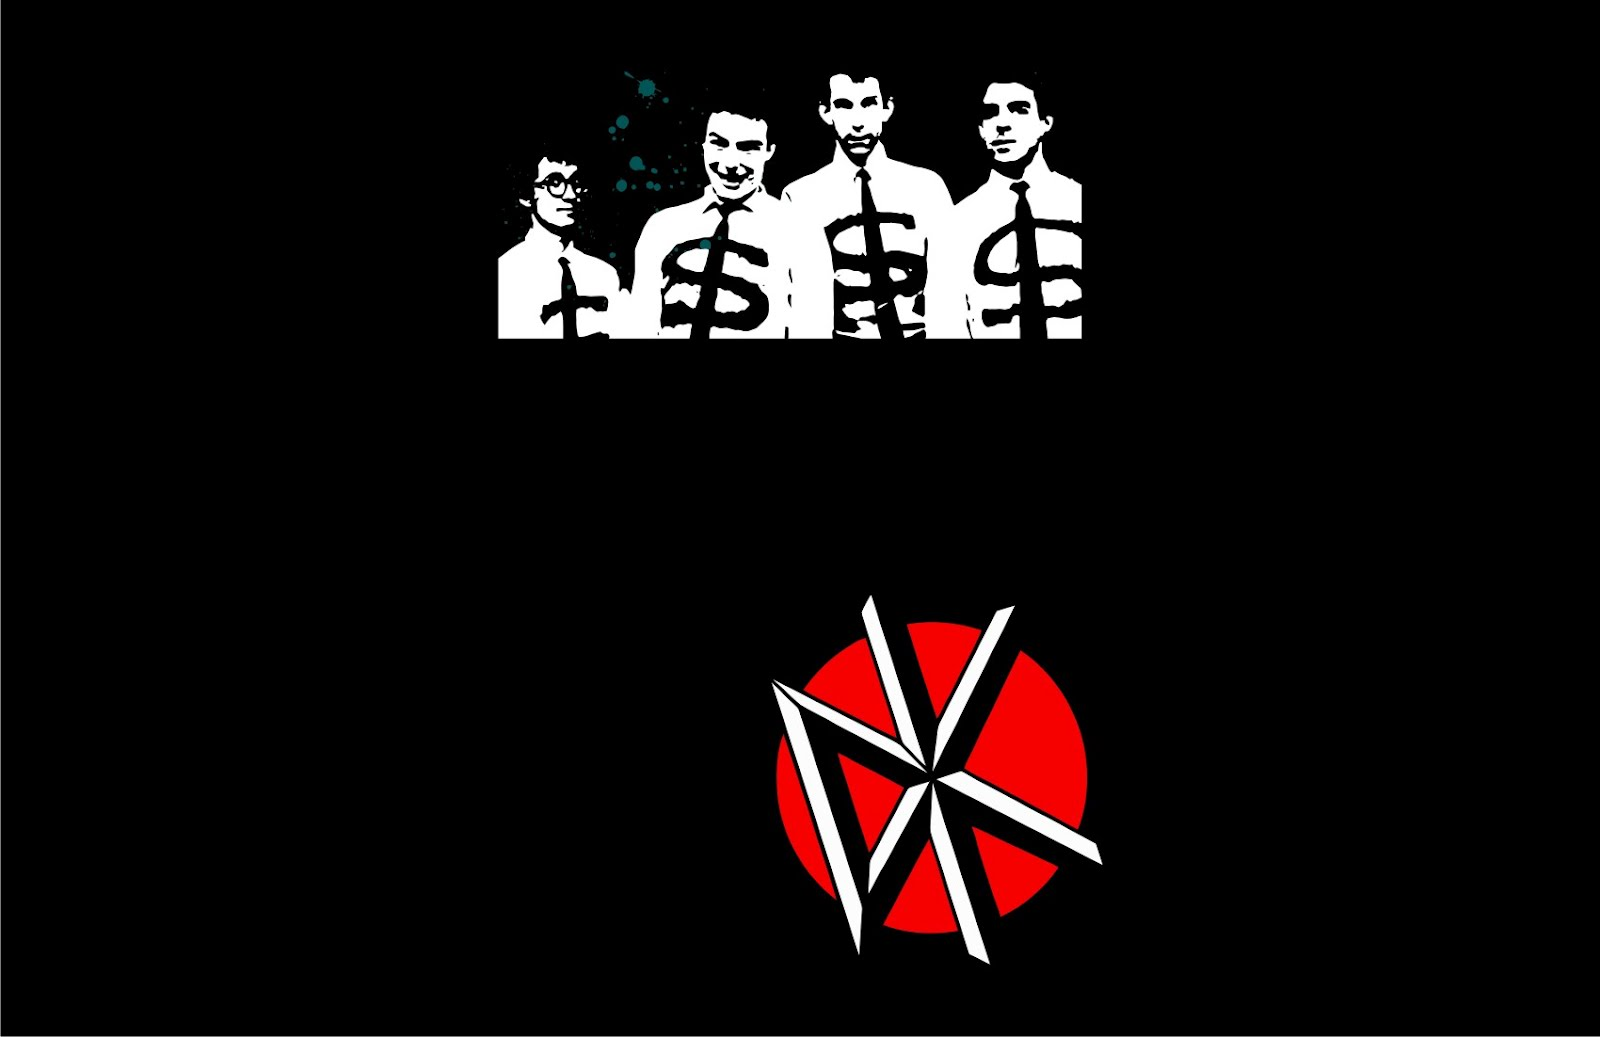 dead_kennedys-band_front_vector